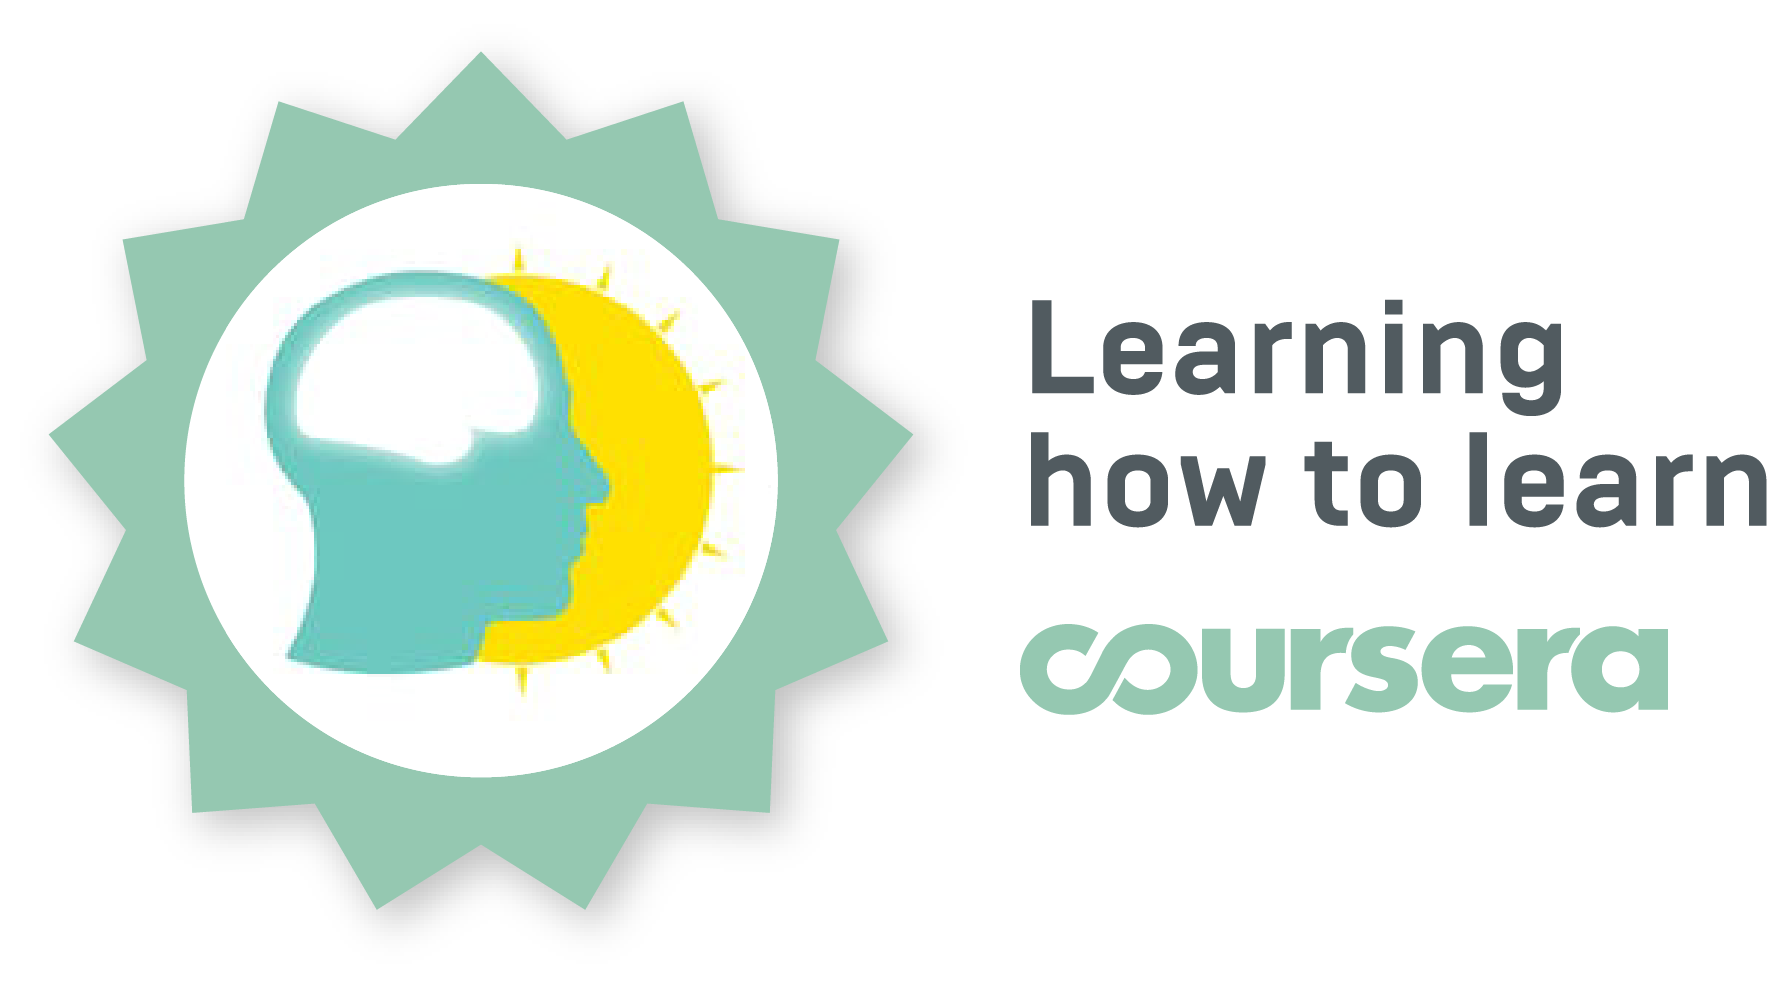 [https://www.coursera.org/learn/learning-how-to-learn](https://www.coursera.org/learn/learning-how-to-learn)